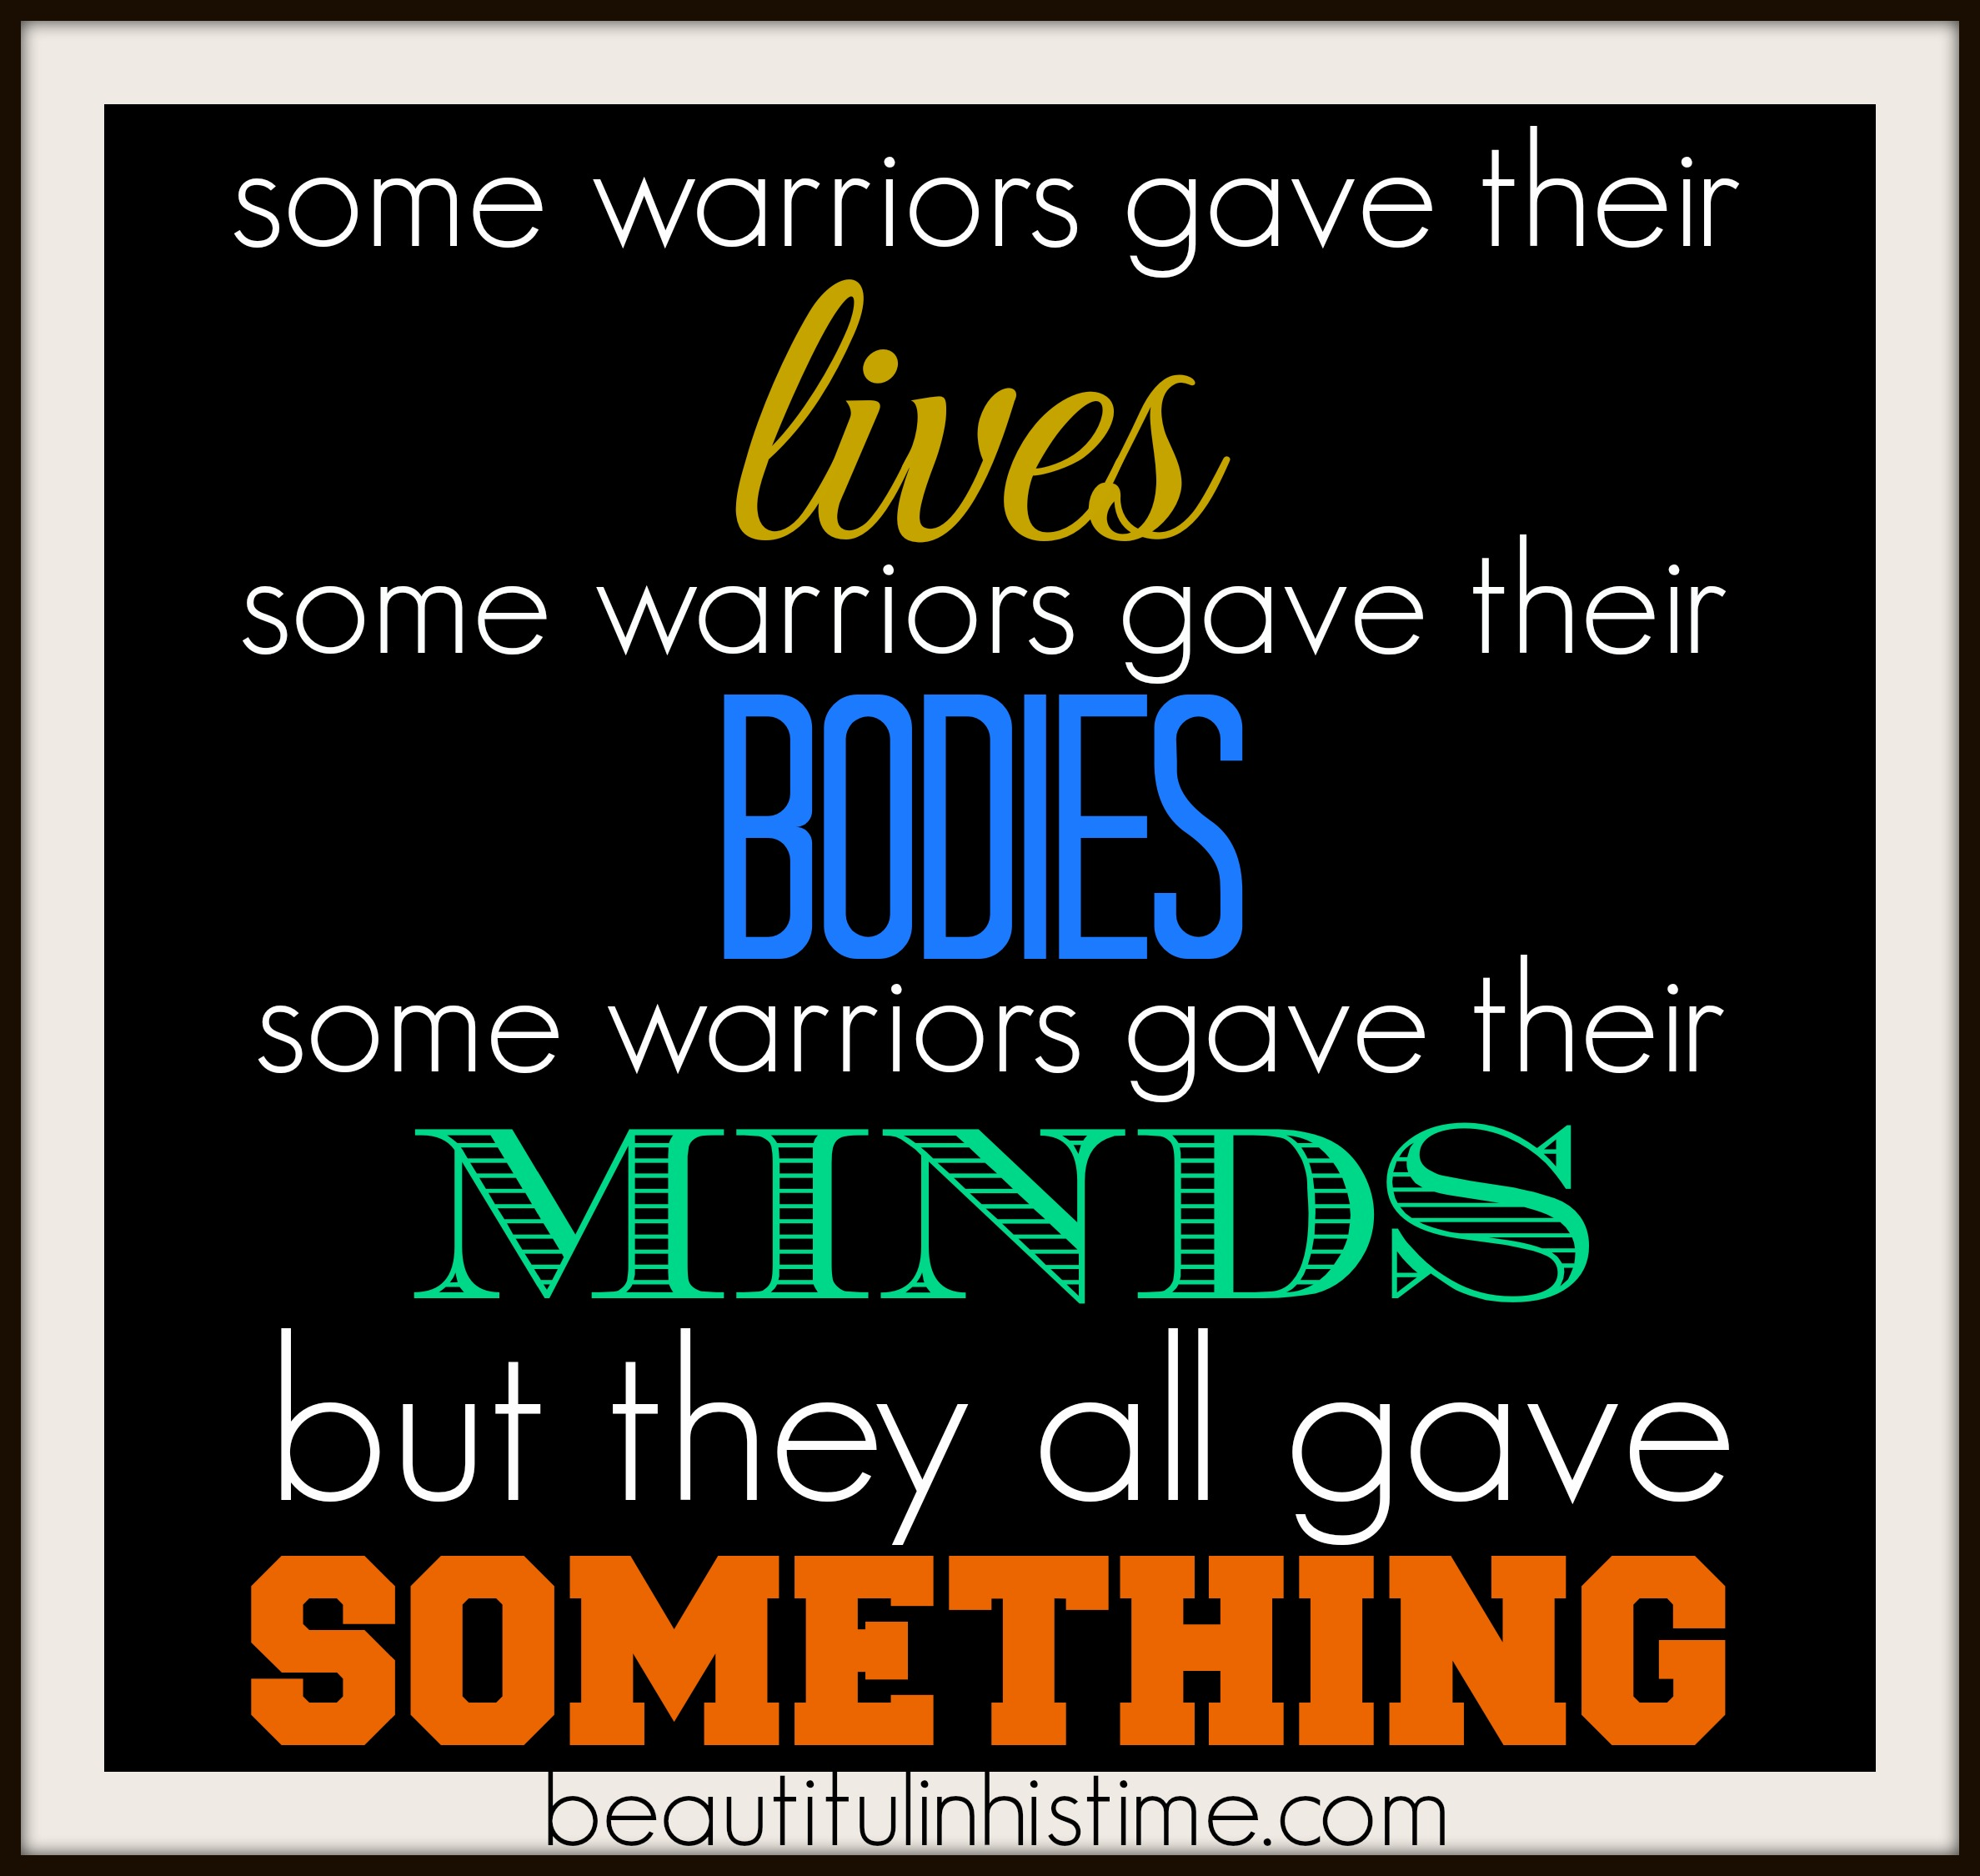 they all gave something #woundedwarriors #ptsd #combatstress #veterans #military #milpouse #deployment